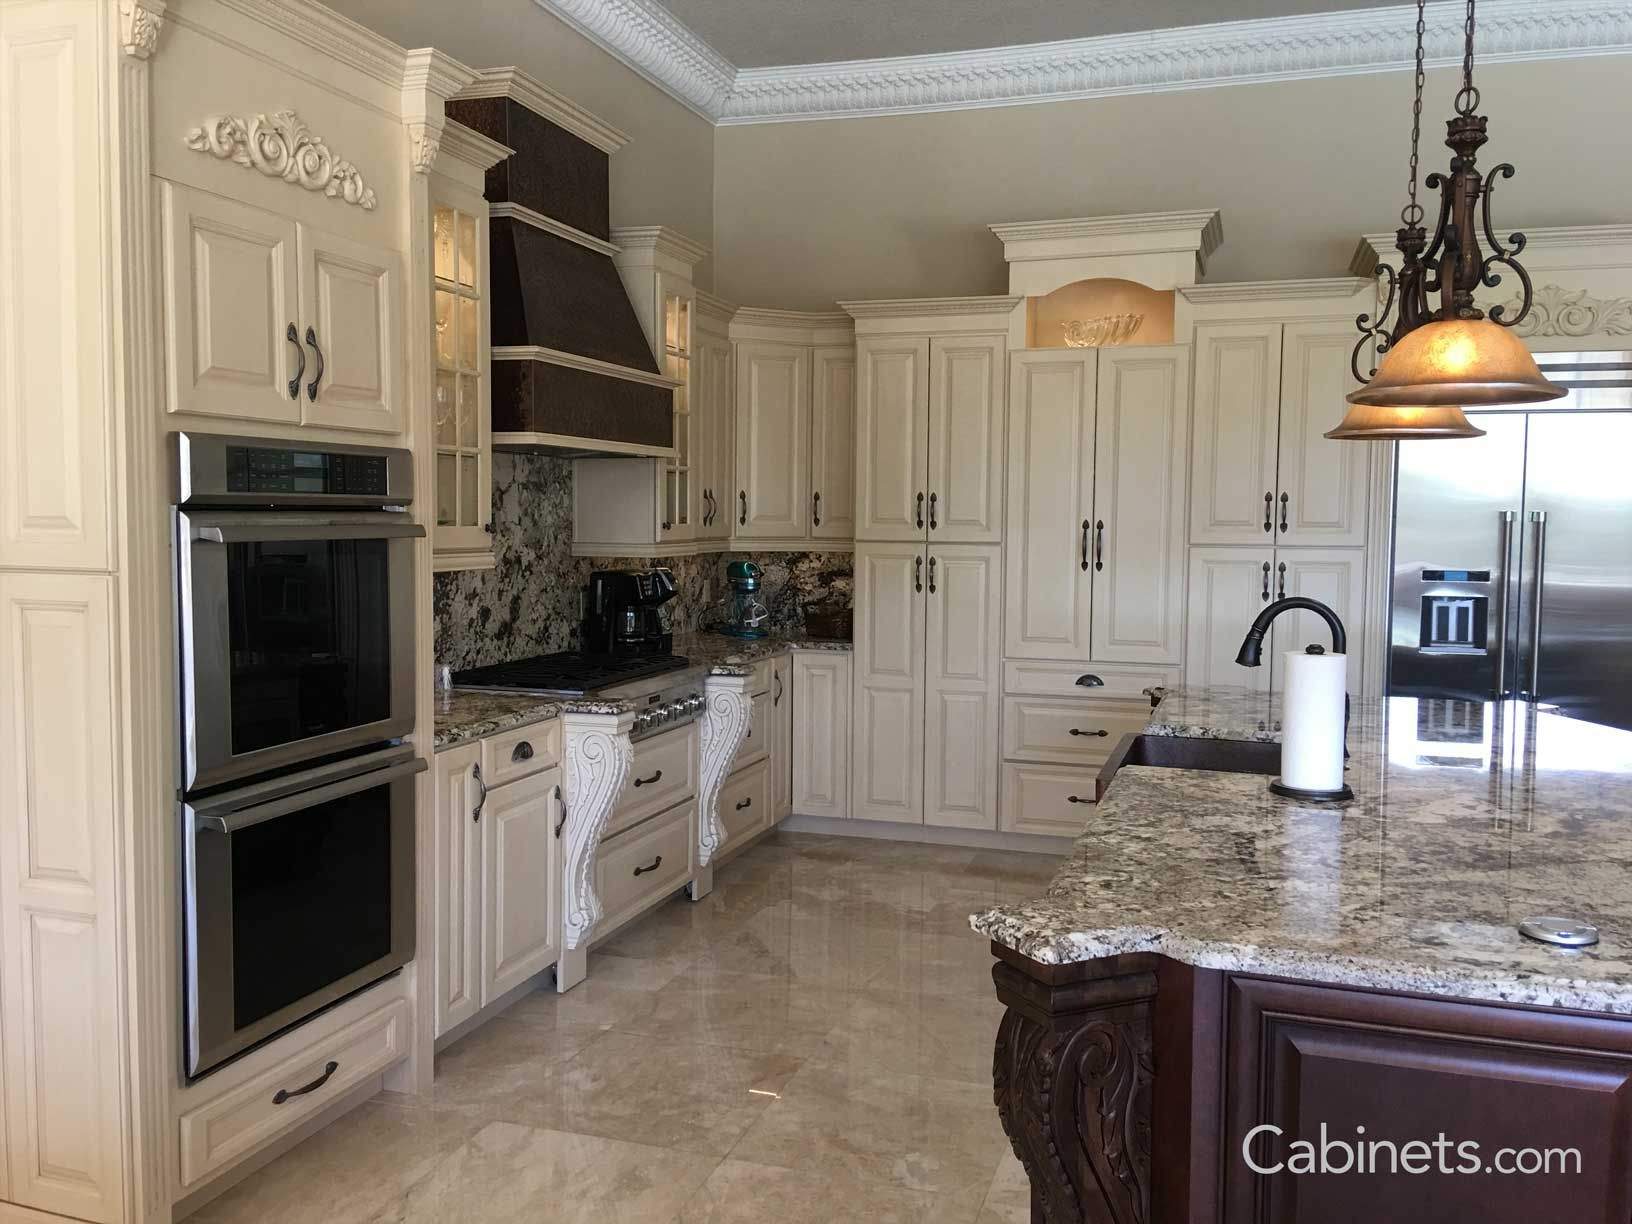 Youngstown Maple Antique White Brushed Brown Glaze Cabinetscom Victorian Kitchen Cabinets Victorian Kitchen Kitchen Cabinet Styles